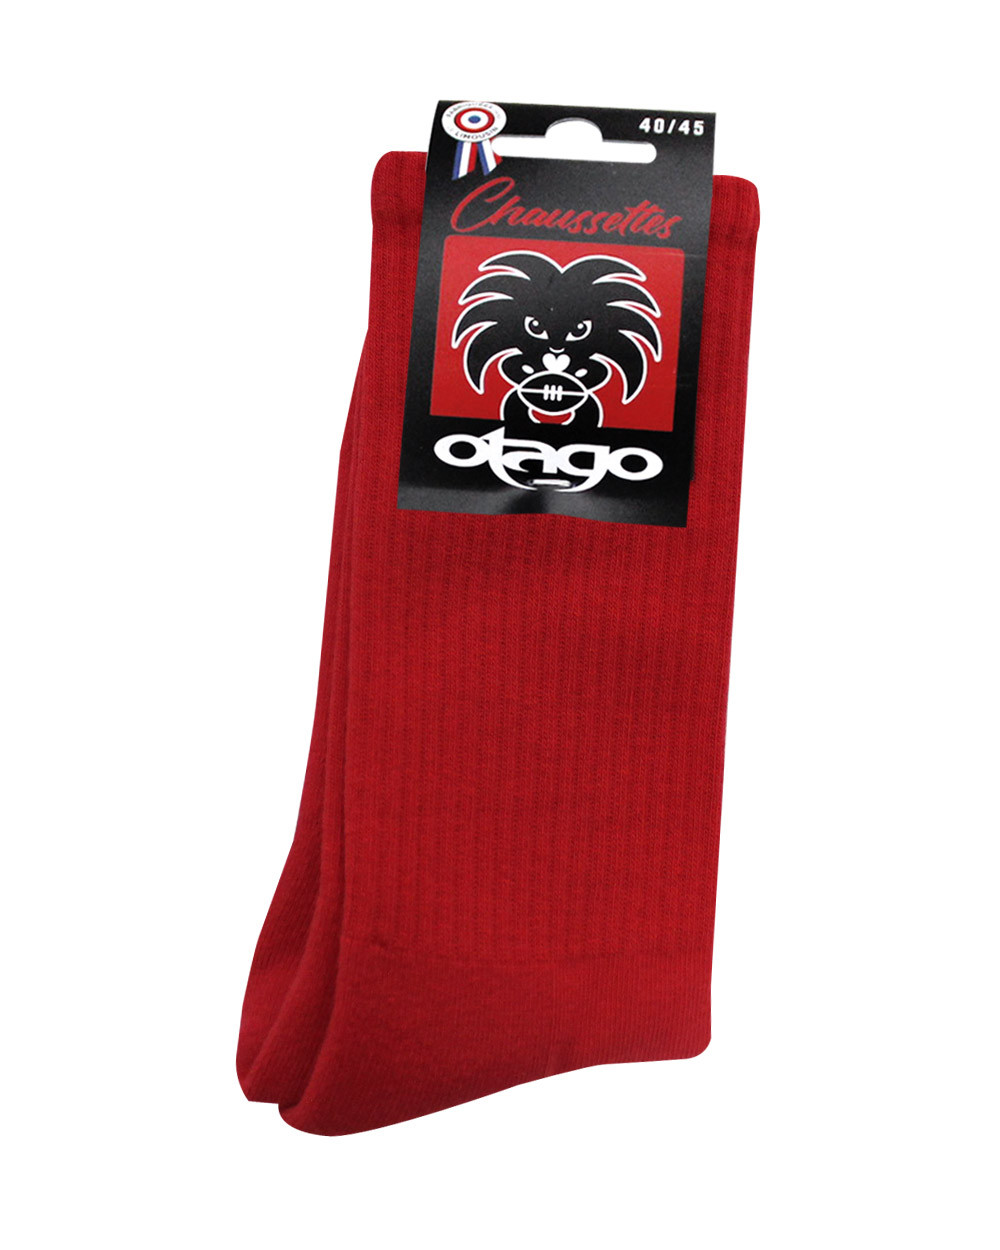 Chaussettes Otago rugby rouges homme